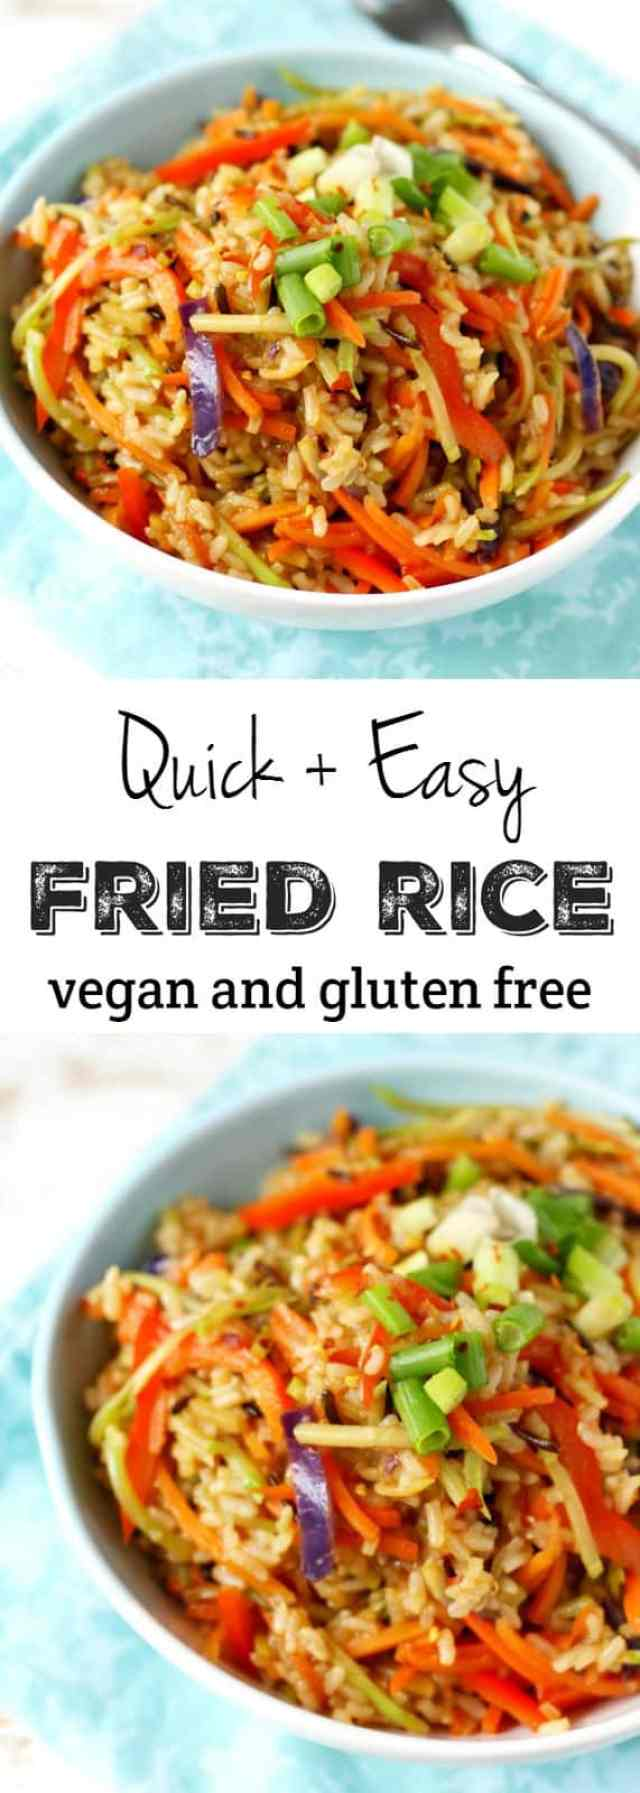 Quick and easy gluten free and vegan fried rice. An easy meal for busy days.